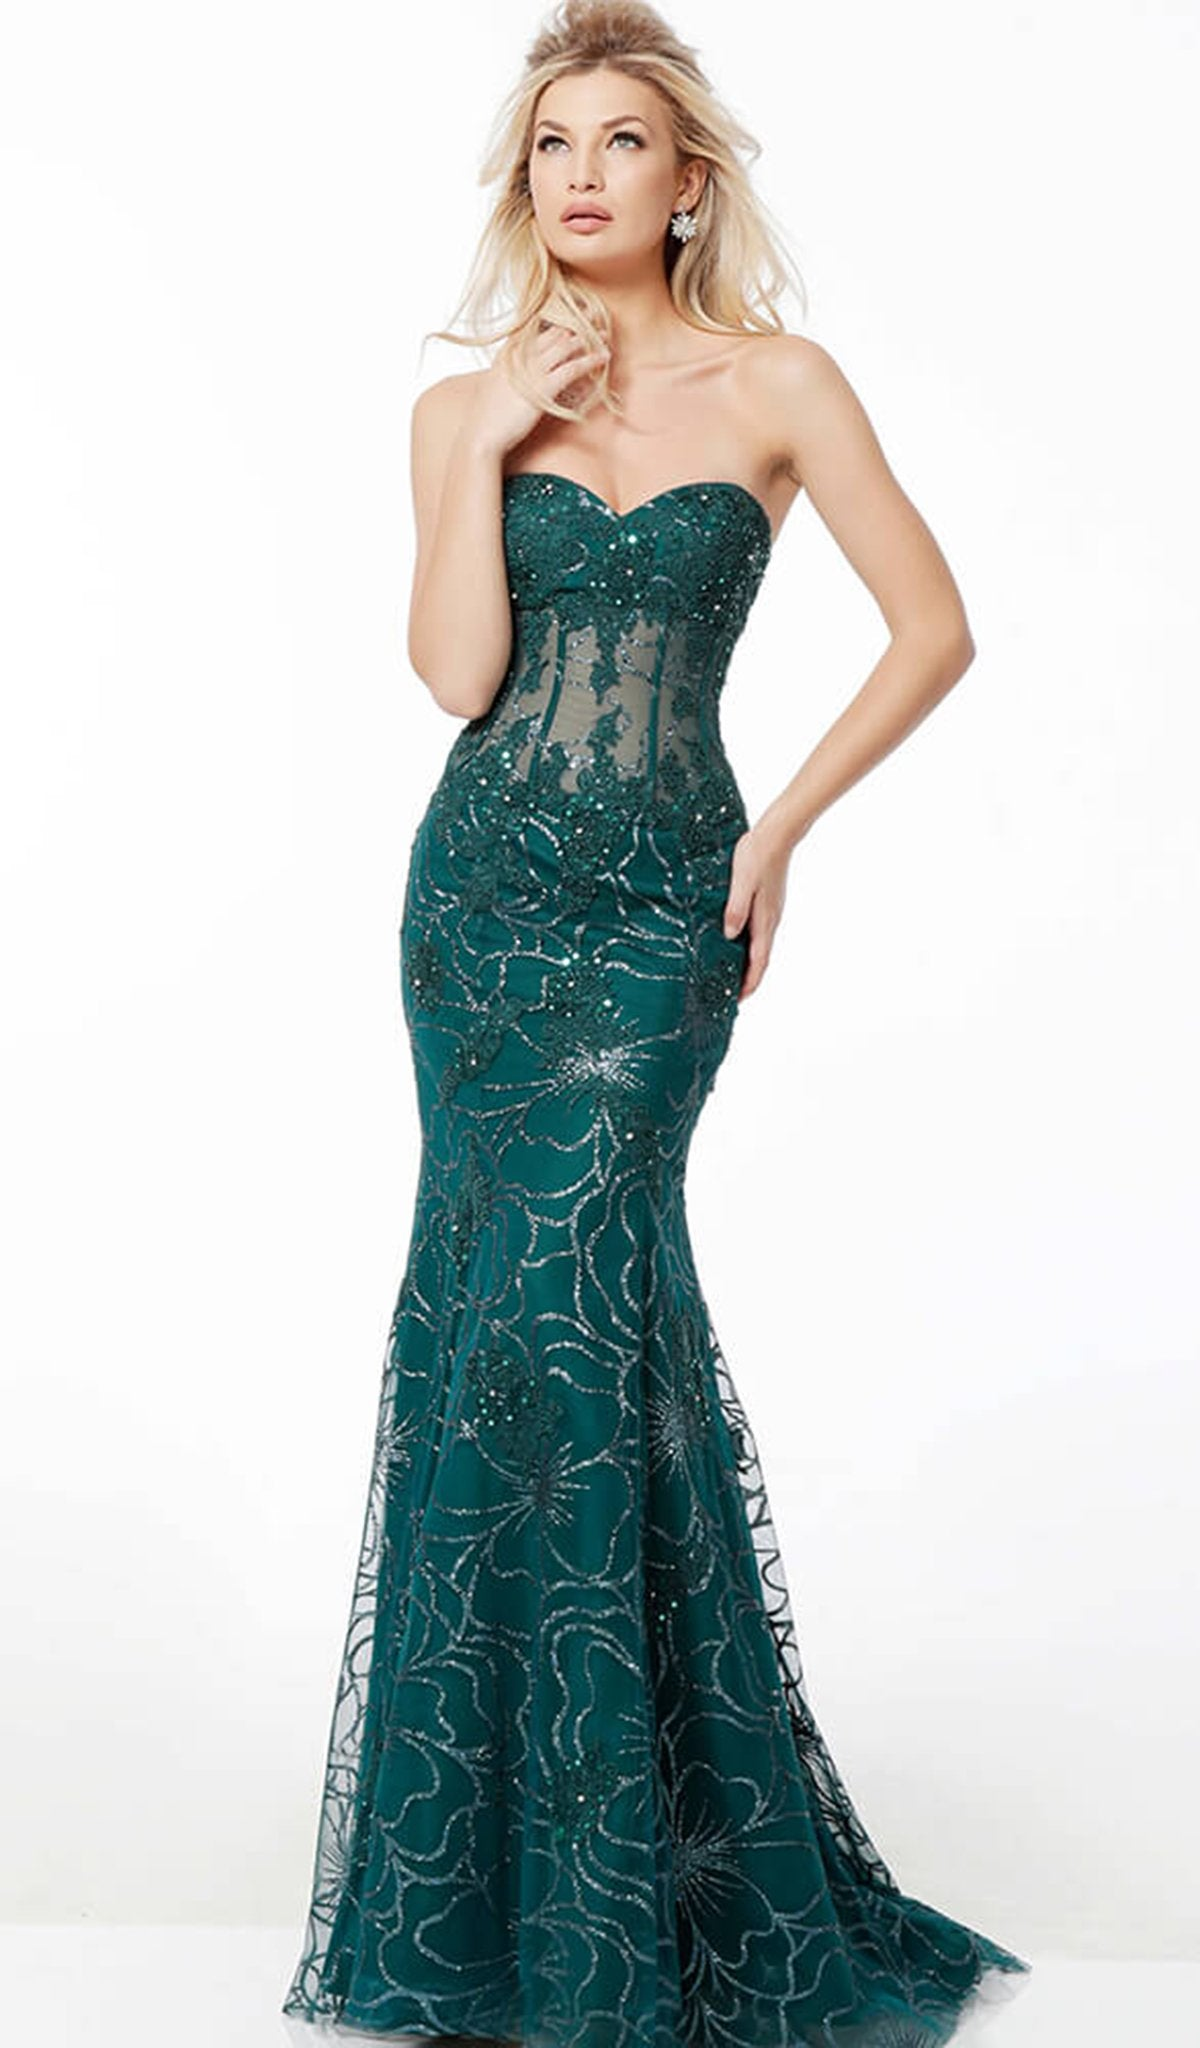 Jovani - 62745 Strapless Floral Glittered Tulle Corset Mermaid Gown In Green